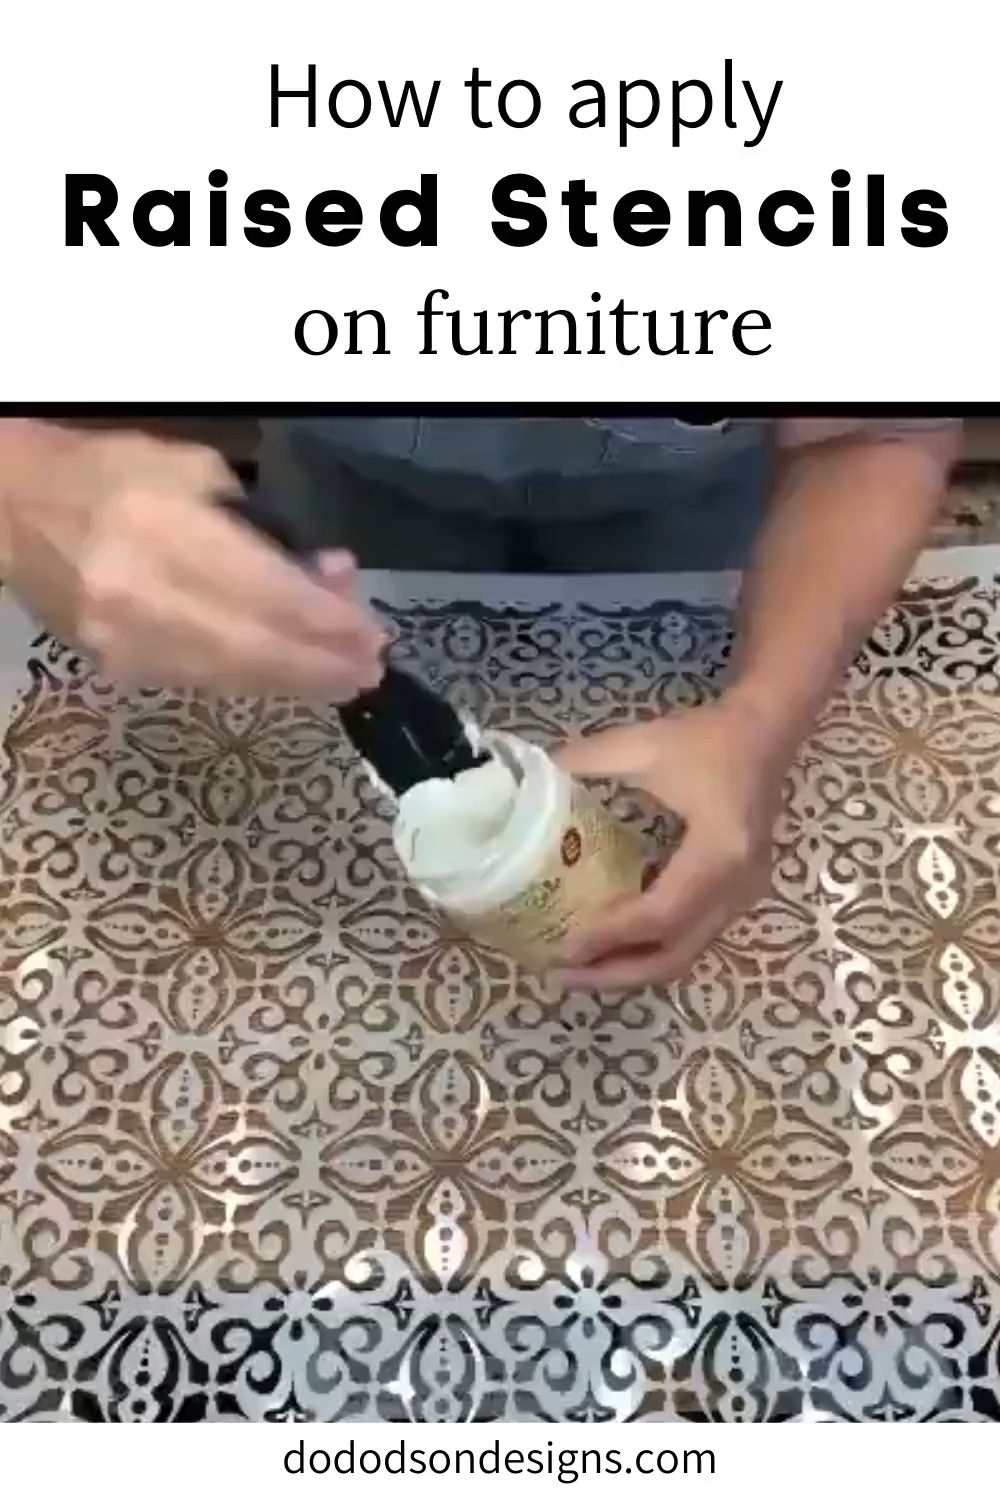 How To Easily Apply Raised Stencils On Furniture